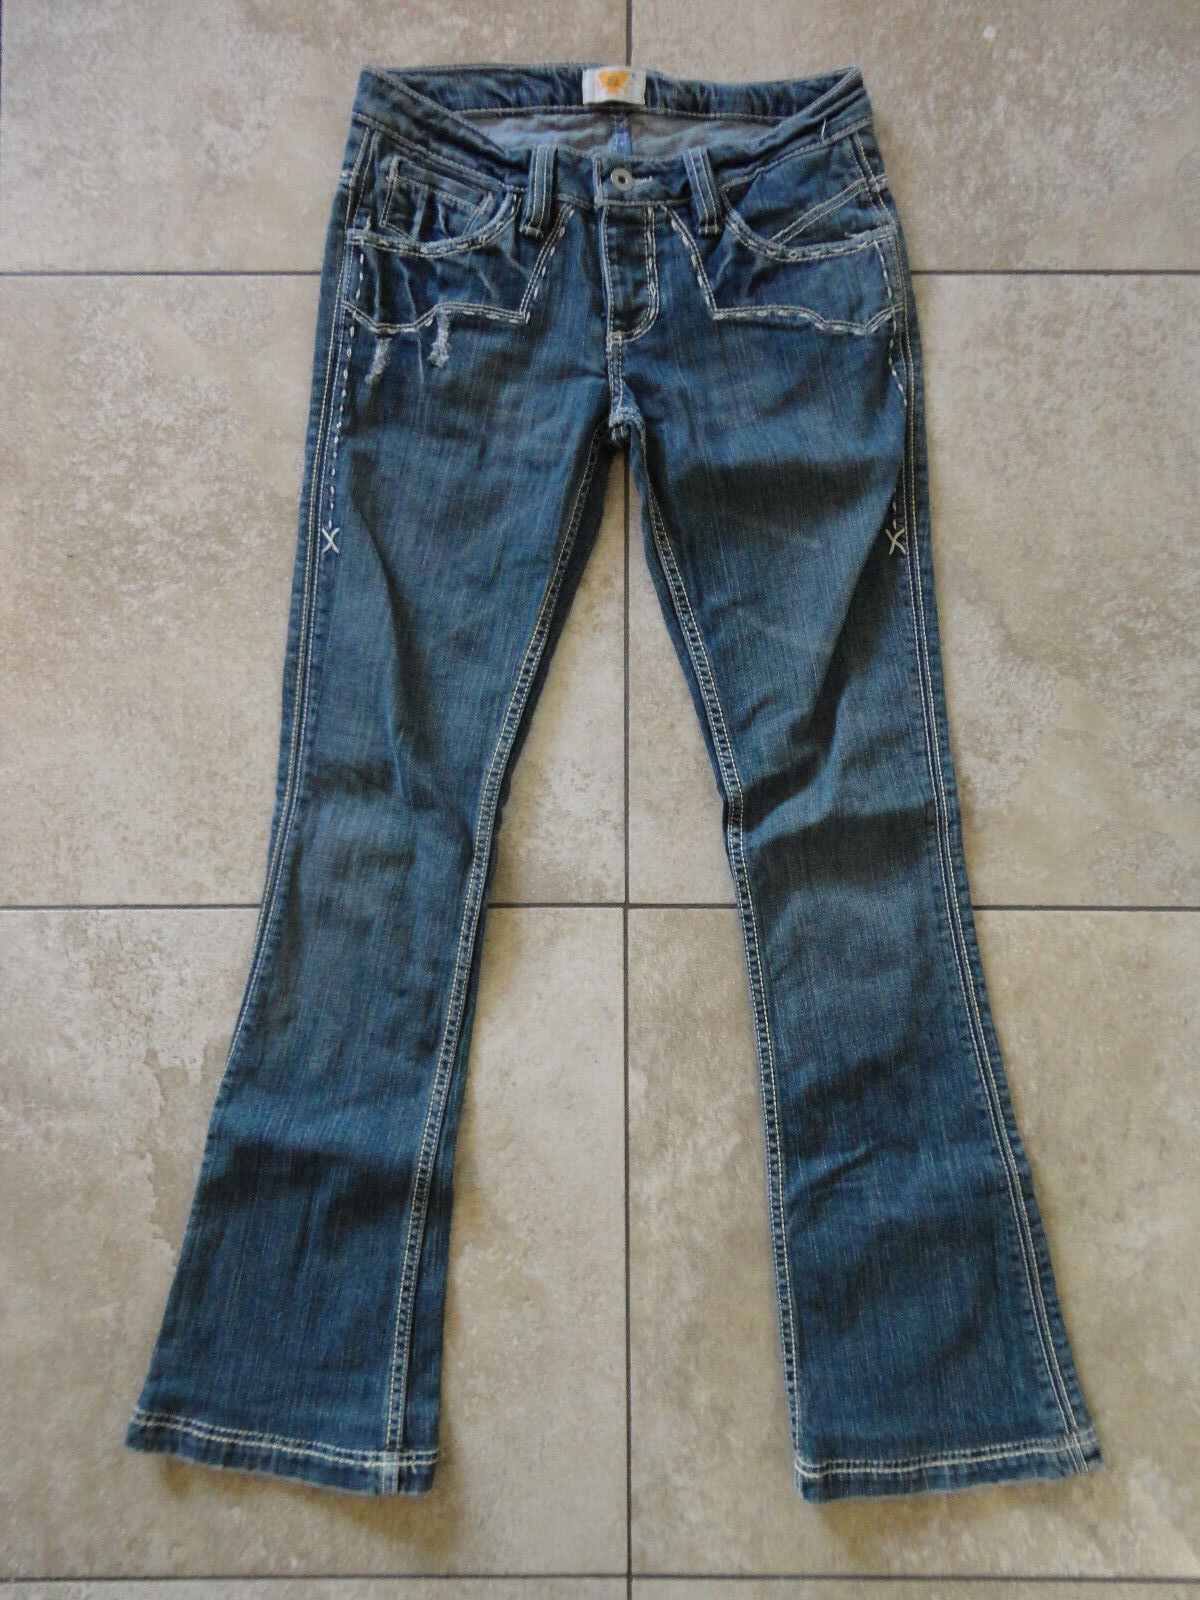 ANTIK DENIM {Size 26 in.} Women's Distressed Bootcut Embroidered Jeans VERY NICE